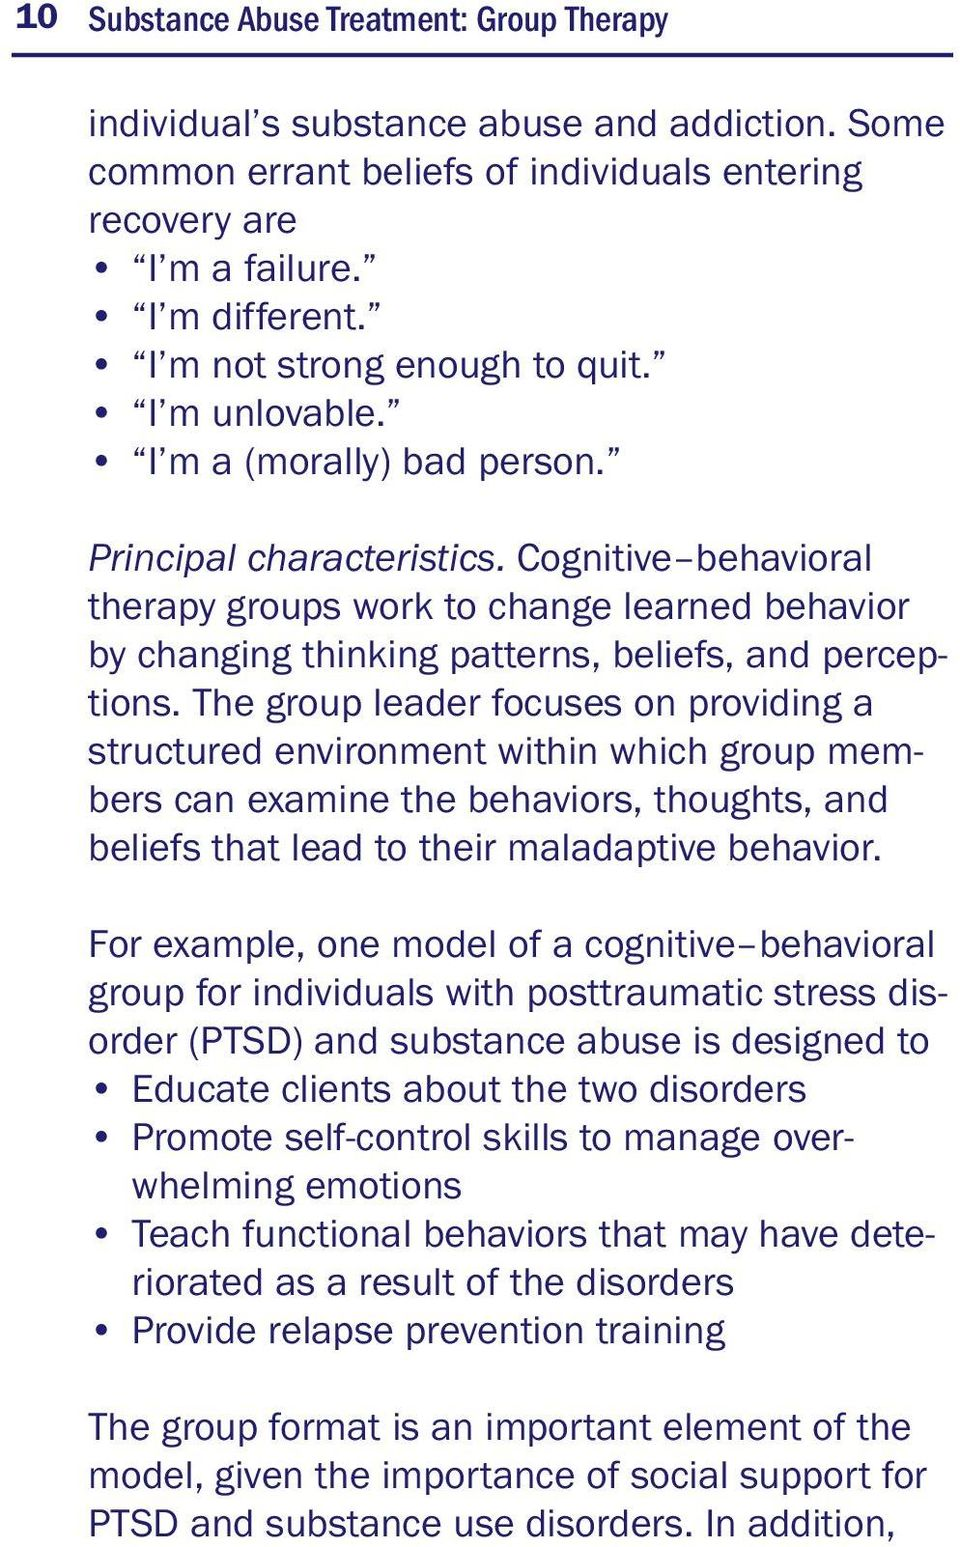 Cognitive behavioral therapy groups work to change learned behavior by changing thinking patterns, beliefs, and perceptions.